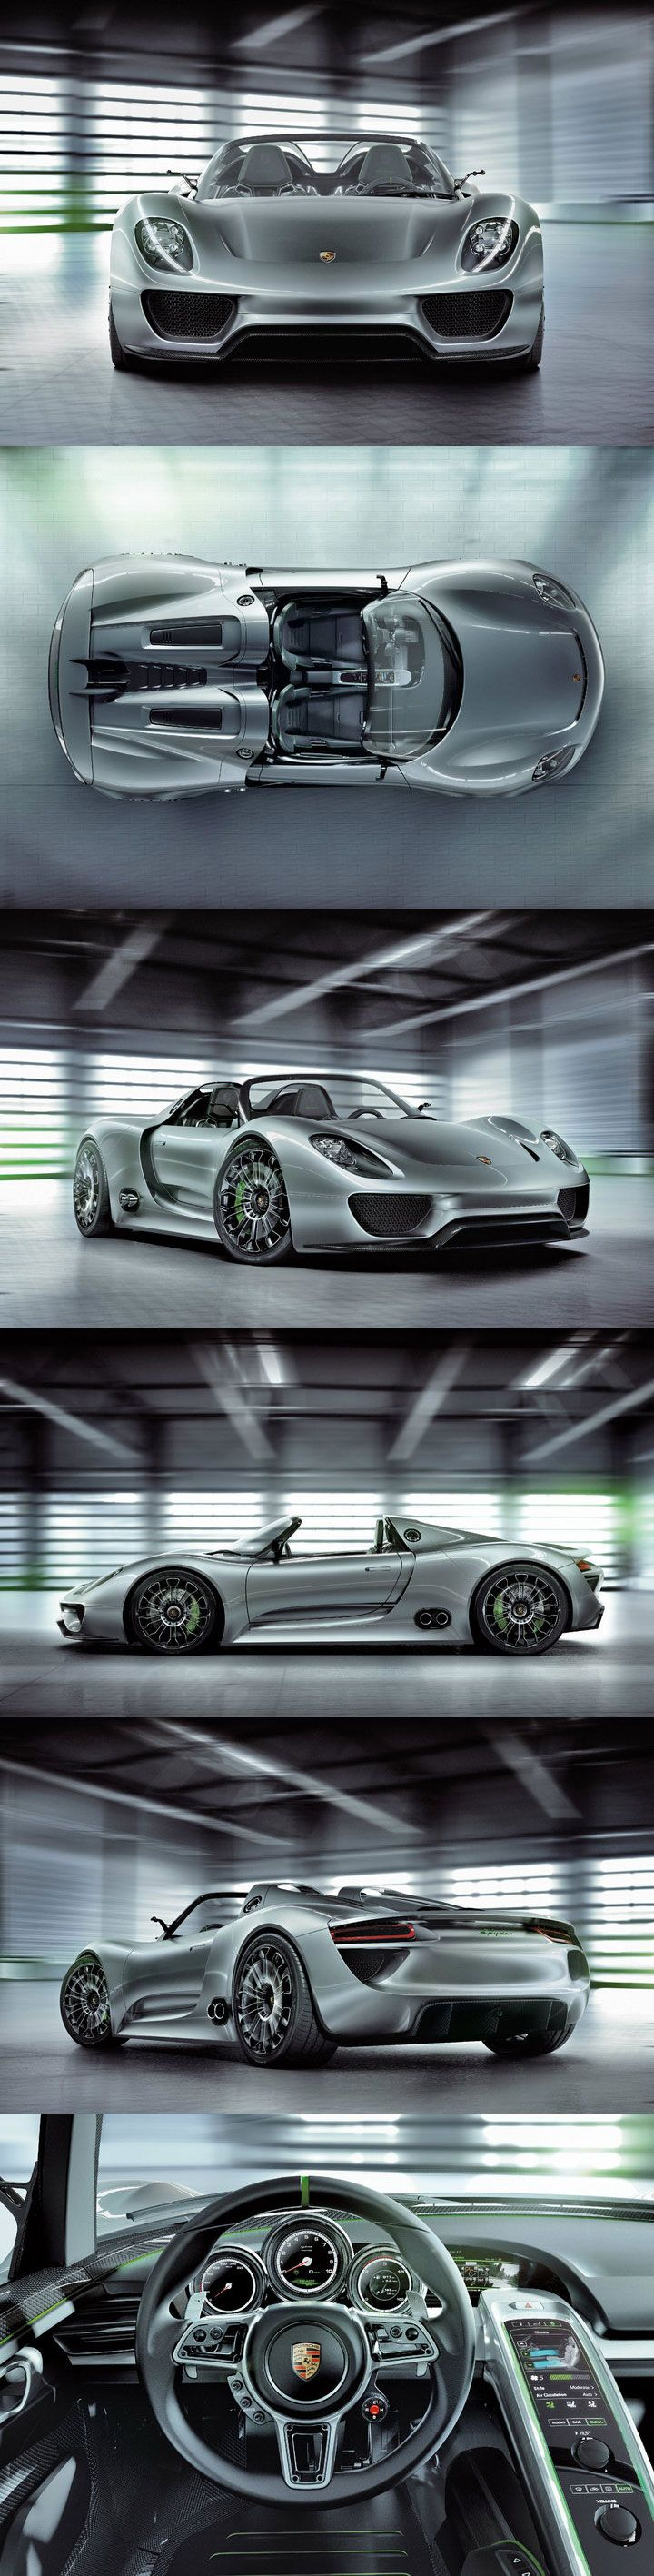 07c8f18fdaf2888db34d3bcefe7f4232--high-tech-geneva Cozy Porsche 918 Spyder Concept Price Real Racing 3 Cars Trend